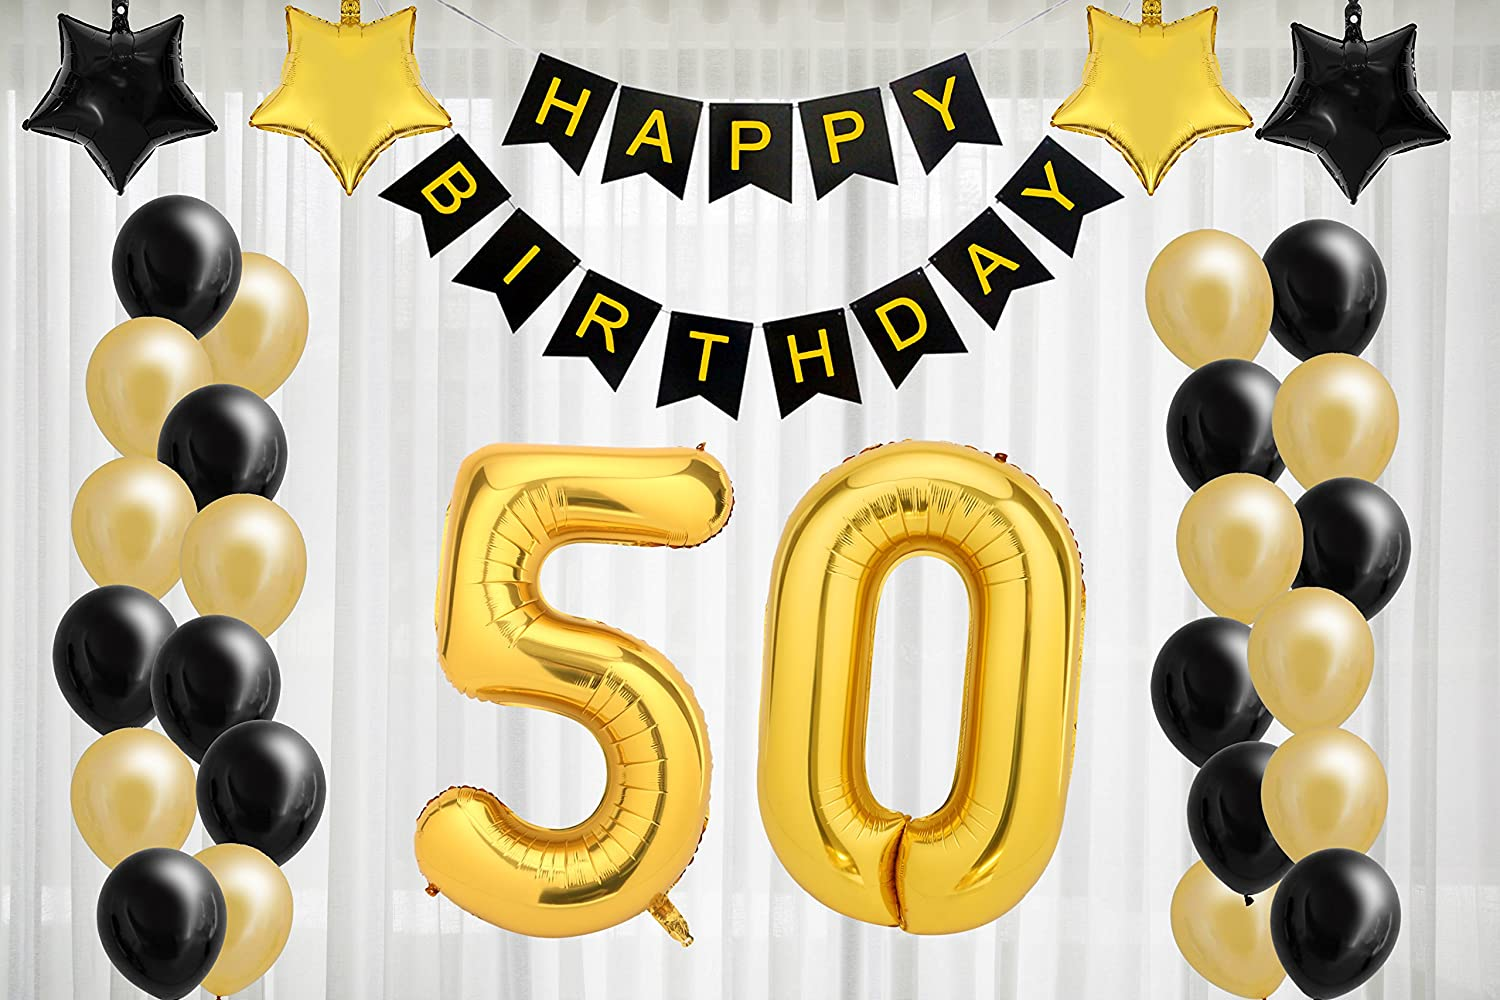 712689d0 Amazon.com: 50th Birthday Decorations for The Best 50th Birthday Party -  Includes Happy Birthday Banner, Large Number 50 Birthday Latex Balloons +  24 ...